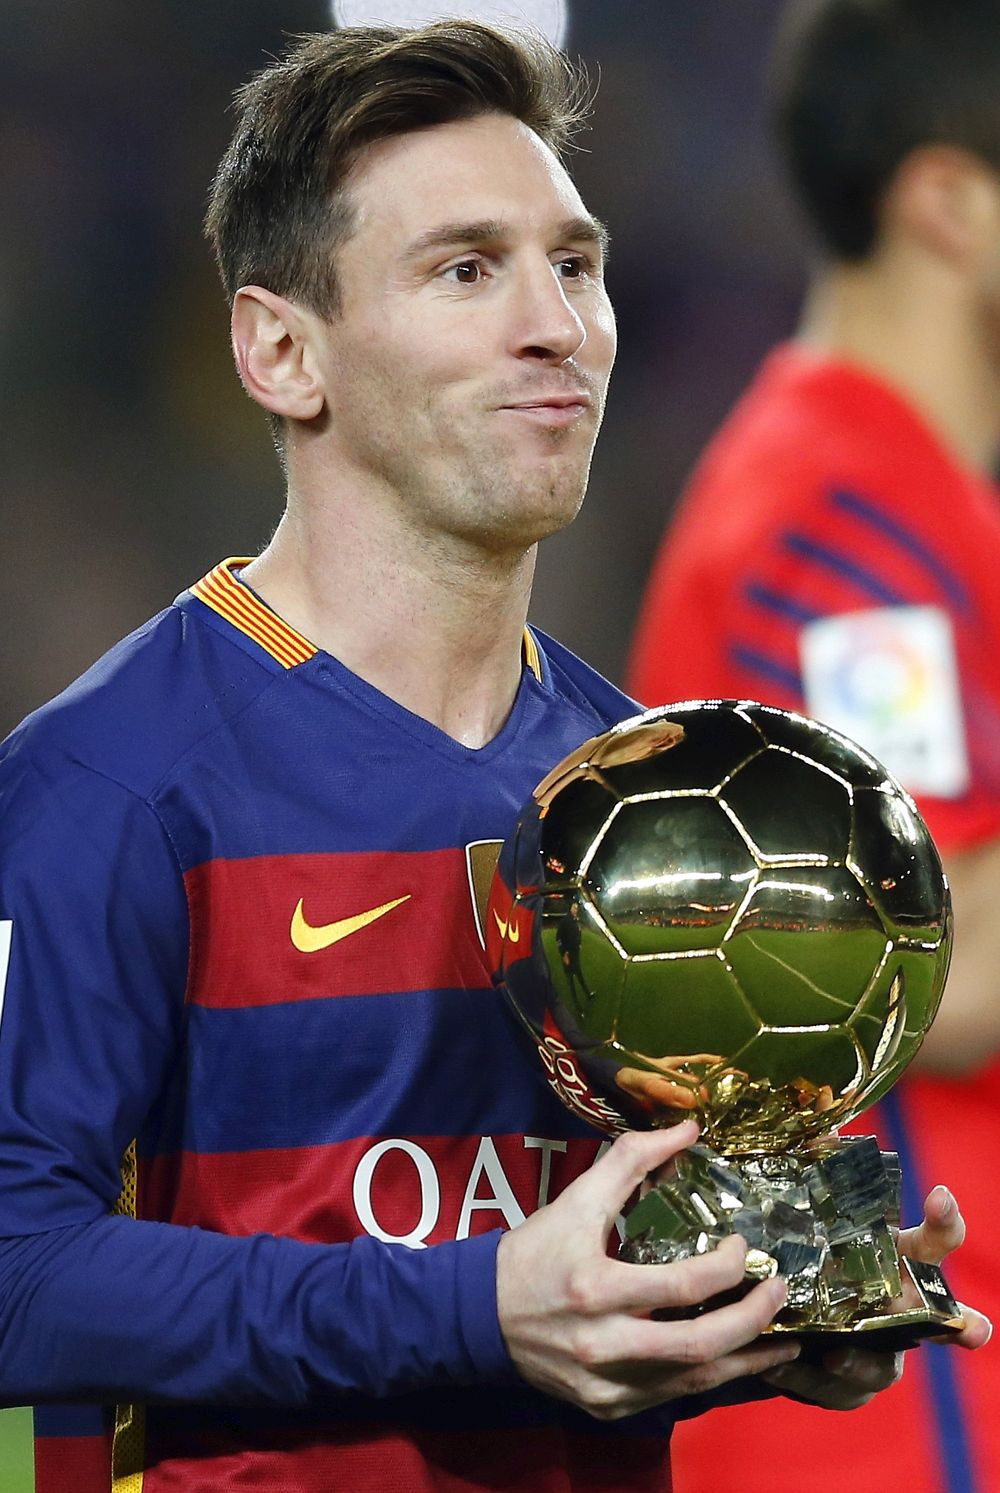 Lionel Messi Iphone Sexy Wallpapers